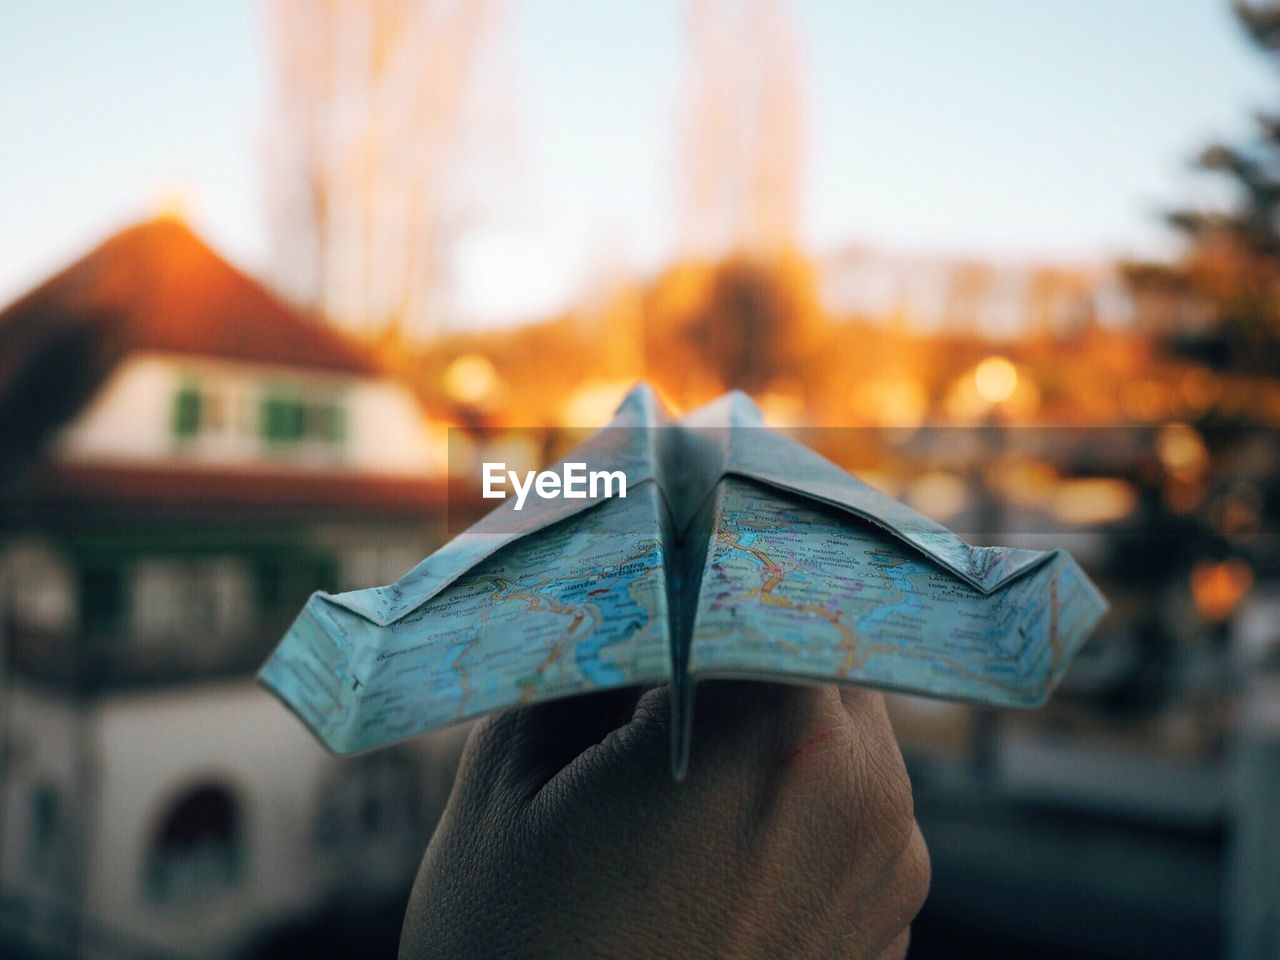 Cropped image of hand holding paper airplane made of map against houses